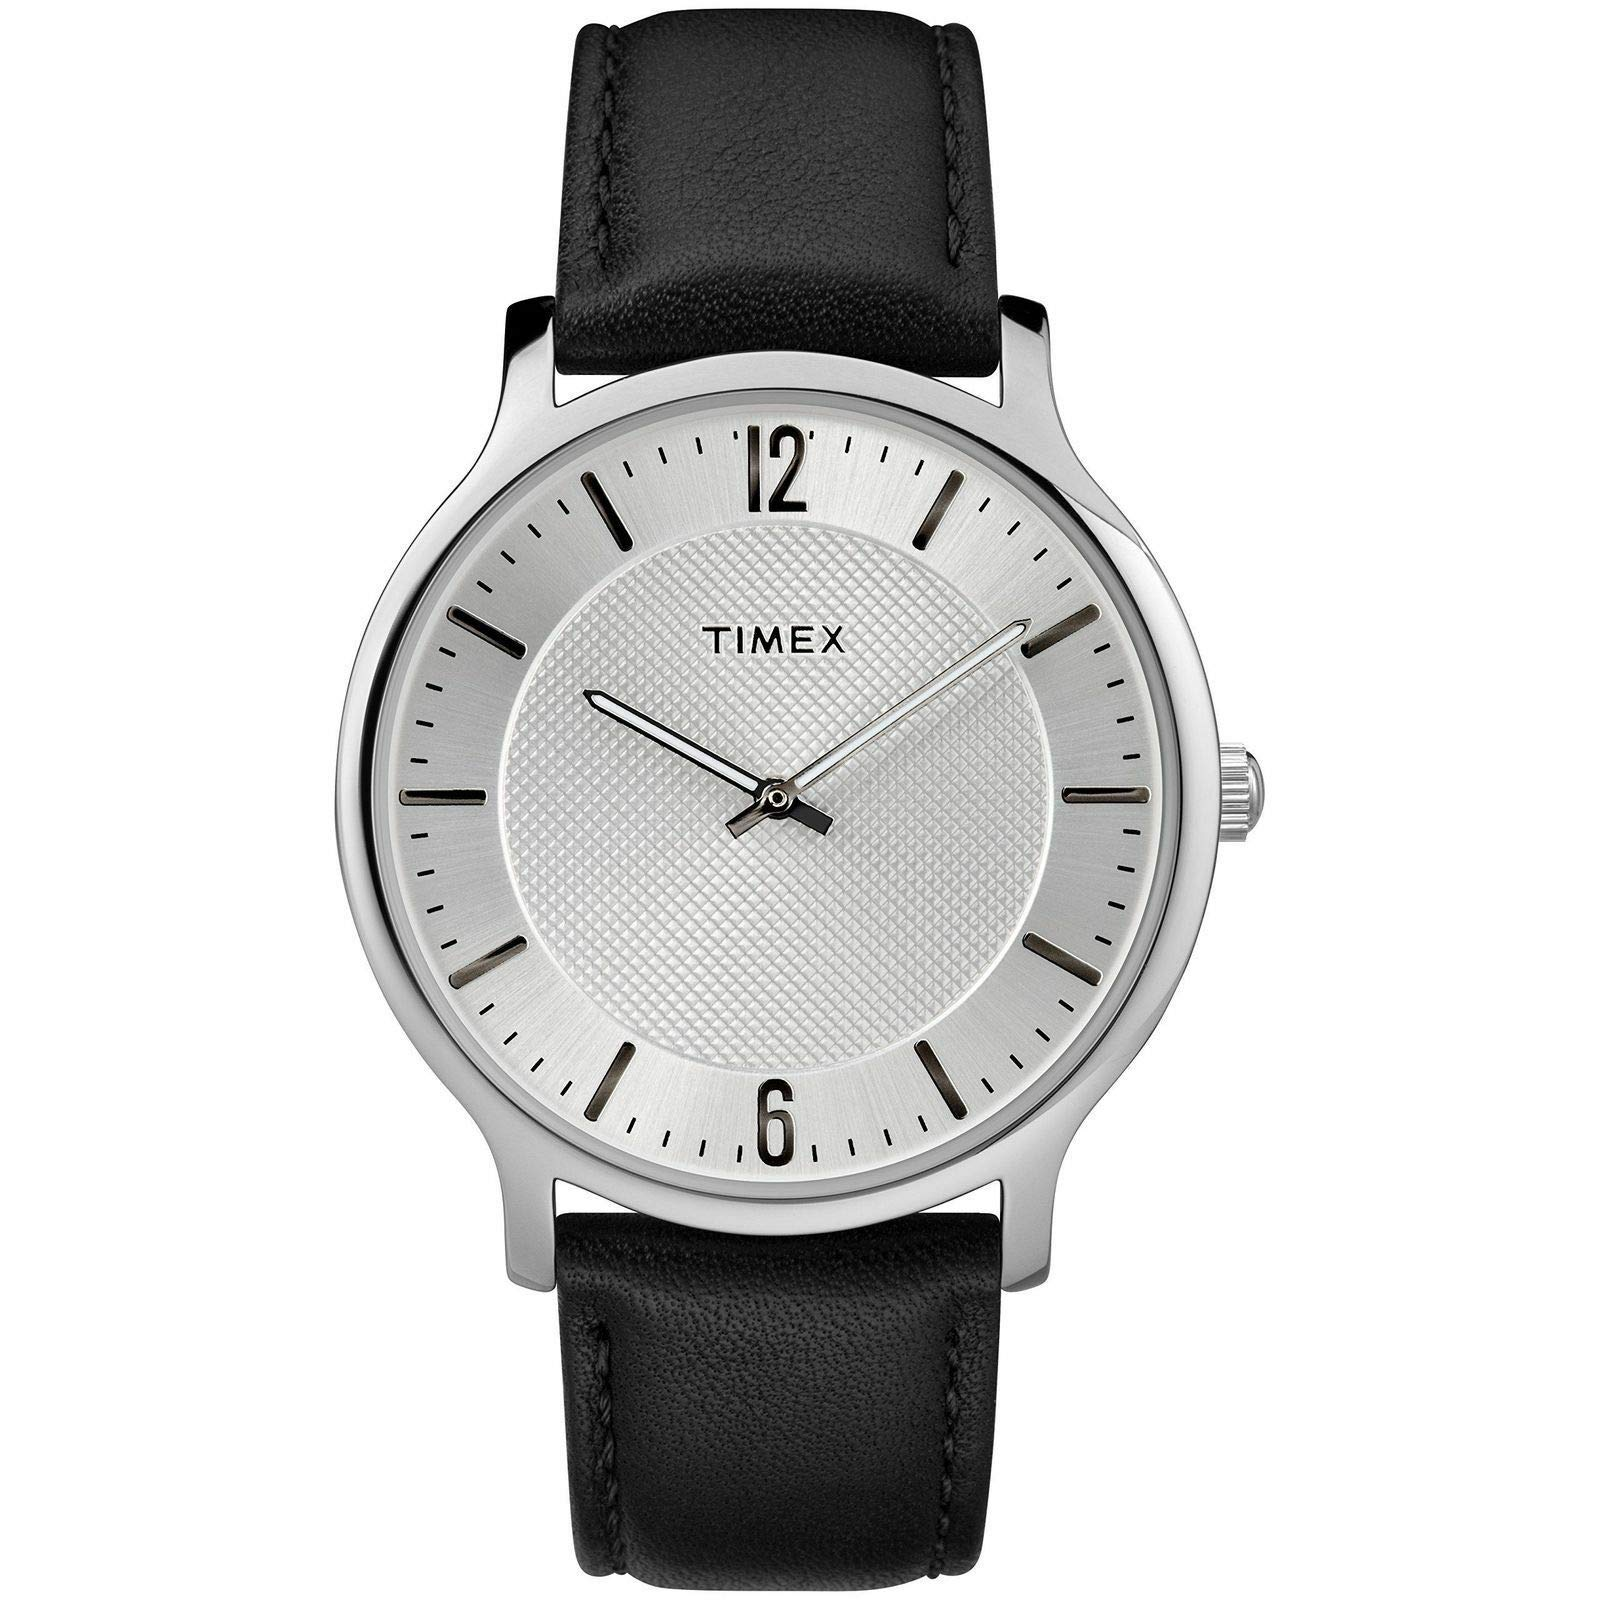 Timex Mens Analogue Classic Quartz Watch with Leather Strap TW2R50000